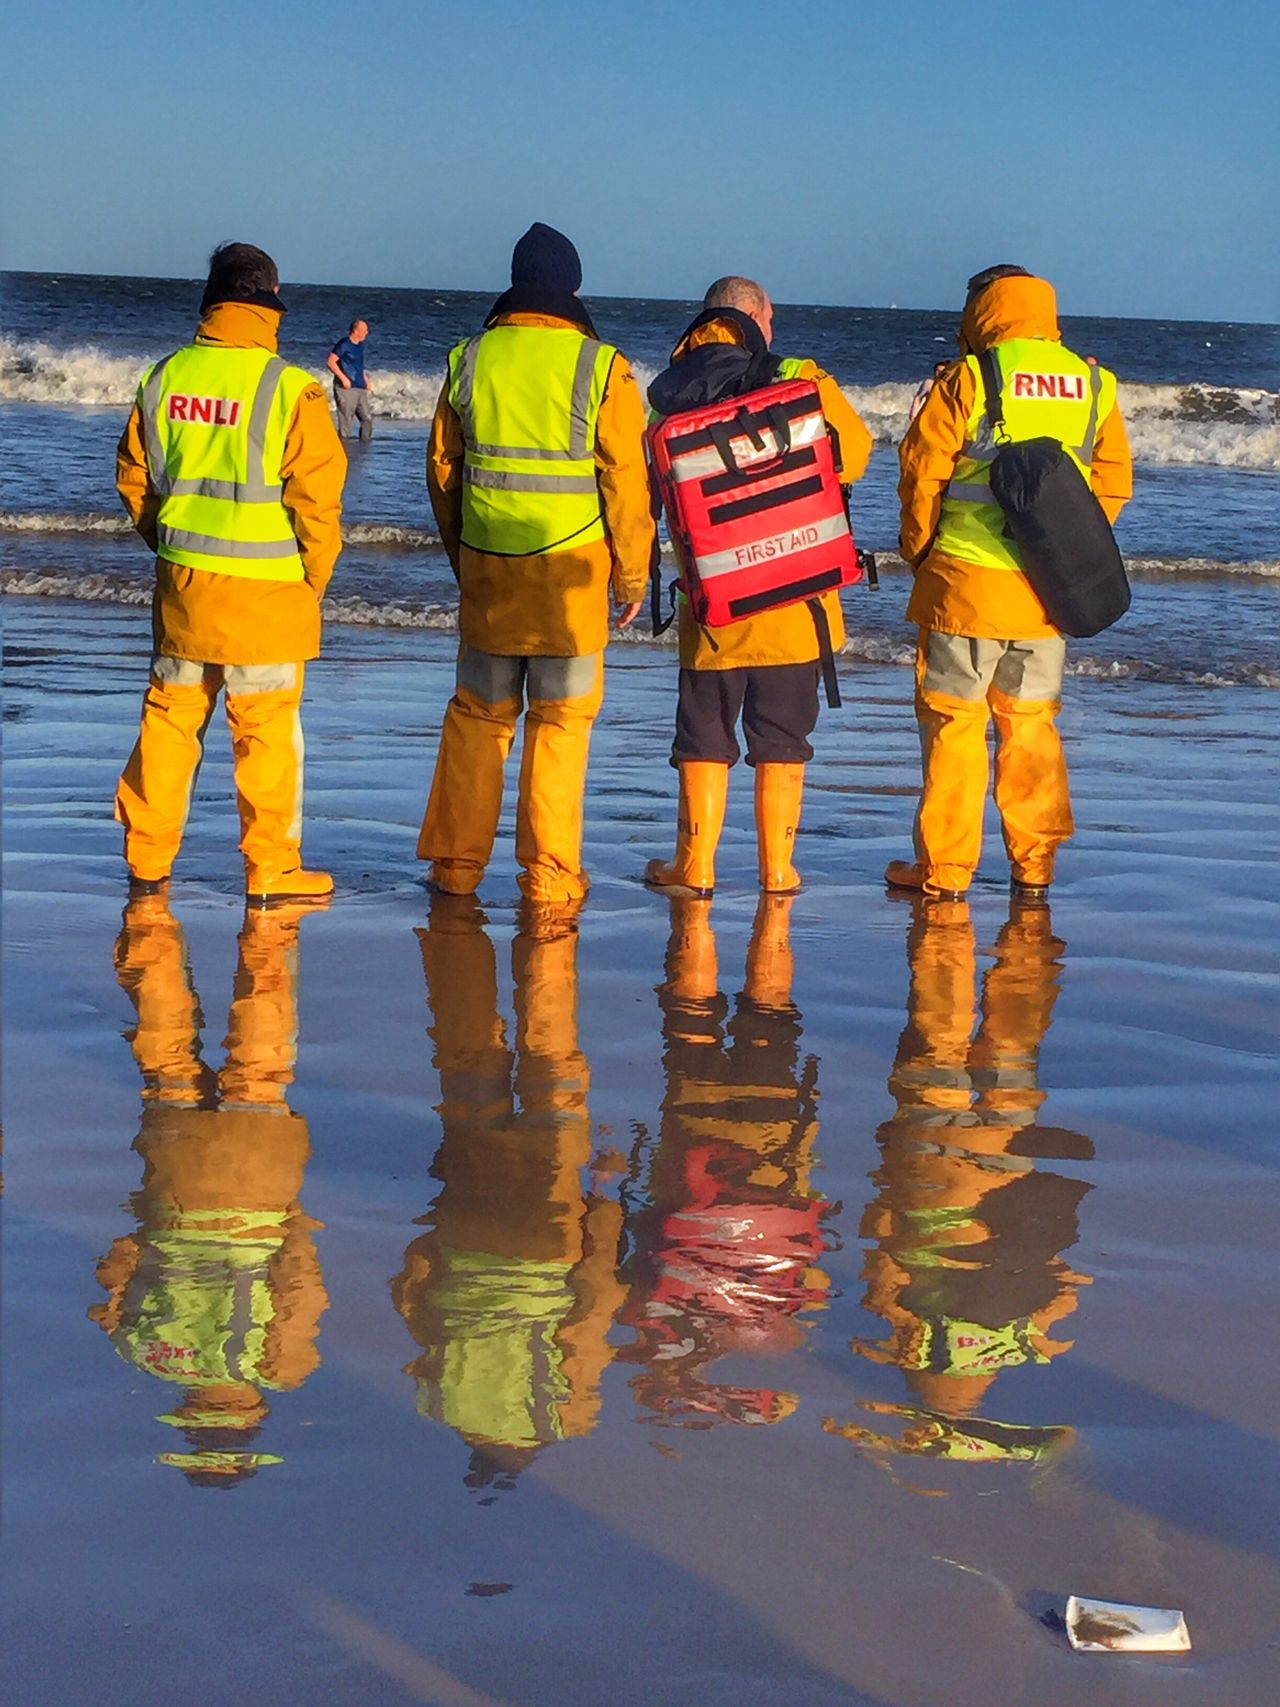 Lifeguards and first aiders on a beach Rear View Reflections Water Real People Sky Sea Outdoors Yellow Horizon Over Water Togetherness Day Beach Men Nature Low Section Winter Beach Teeside Redcar England First Aiders First Aid Sea Lifeguards RNLI